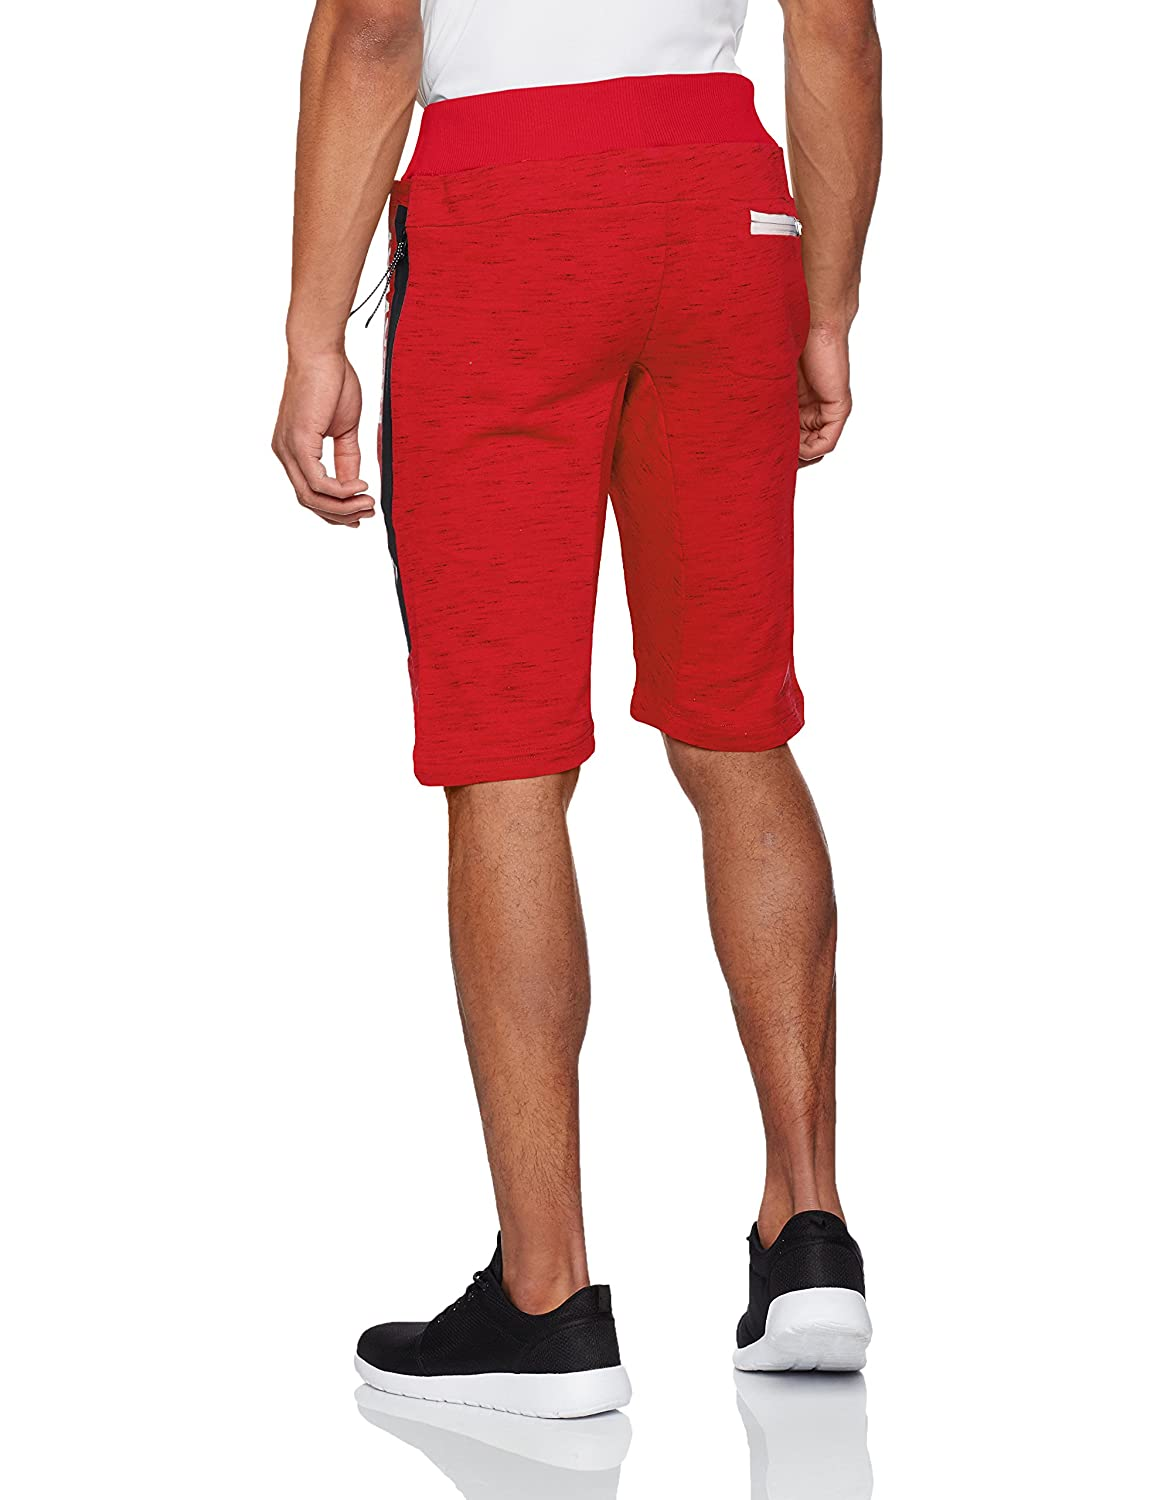 Geographical Sportshorts Norway Herren Sportshorts Geographical Padyear Men 1a6490